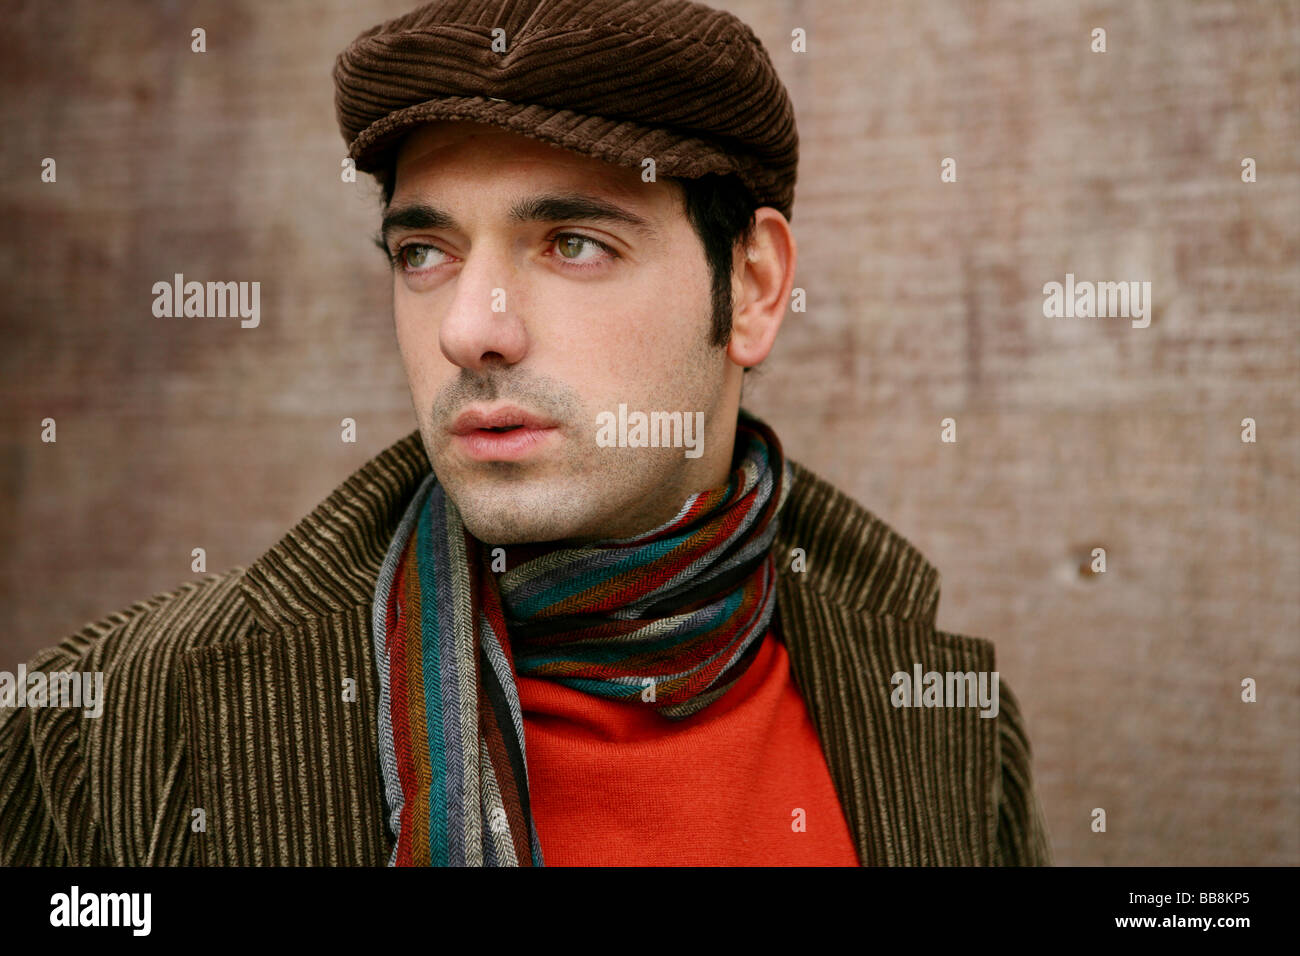 Portrait of yearning man in autumn - Stock Image